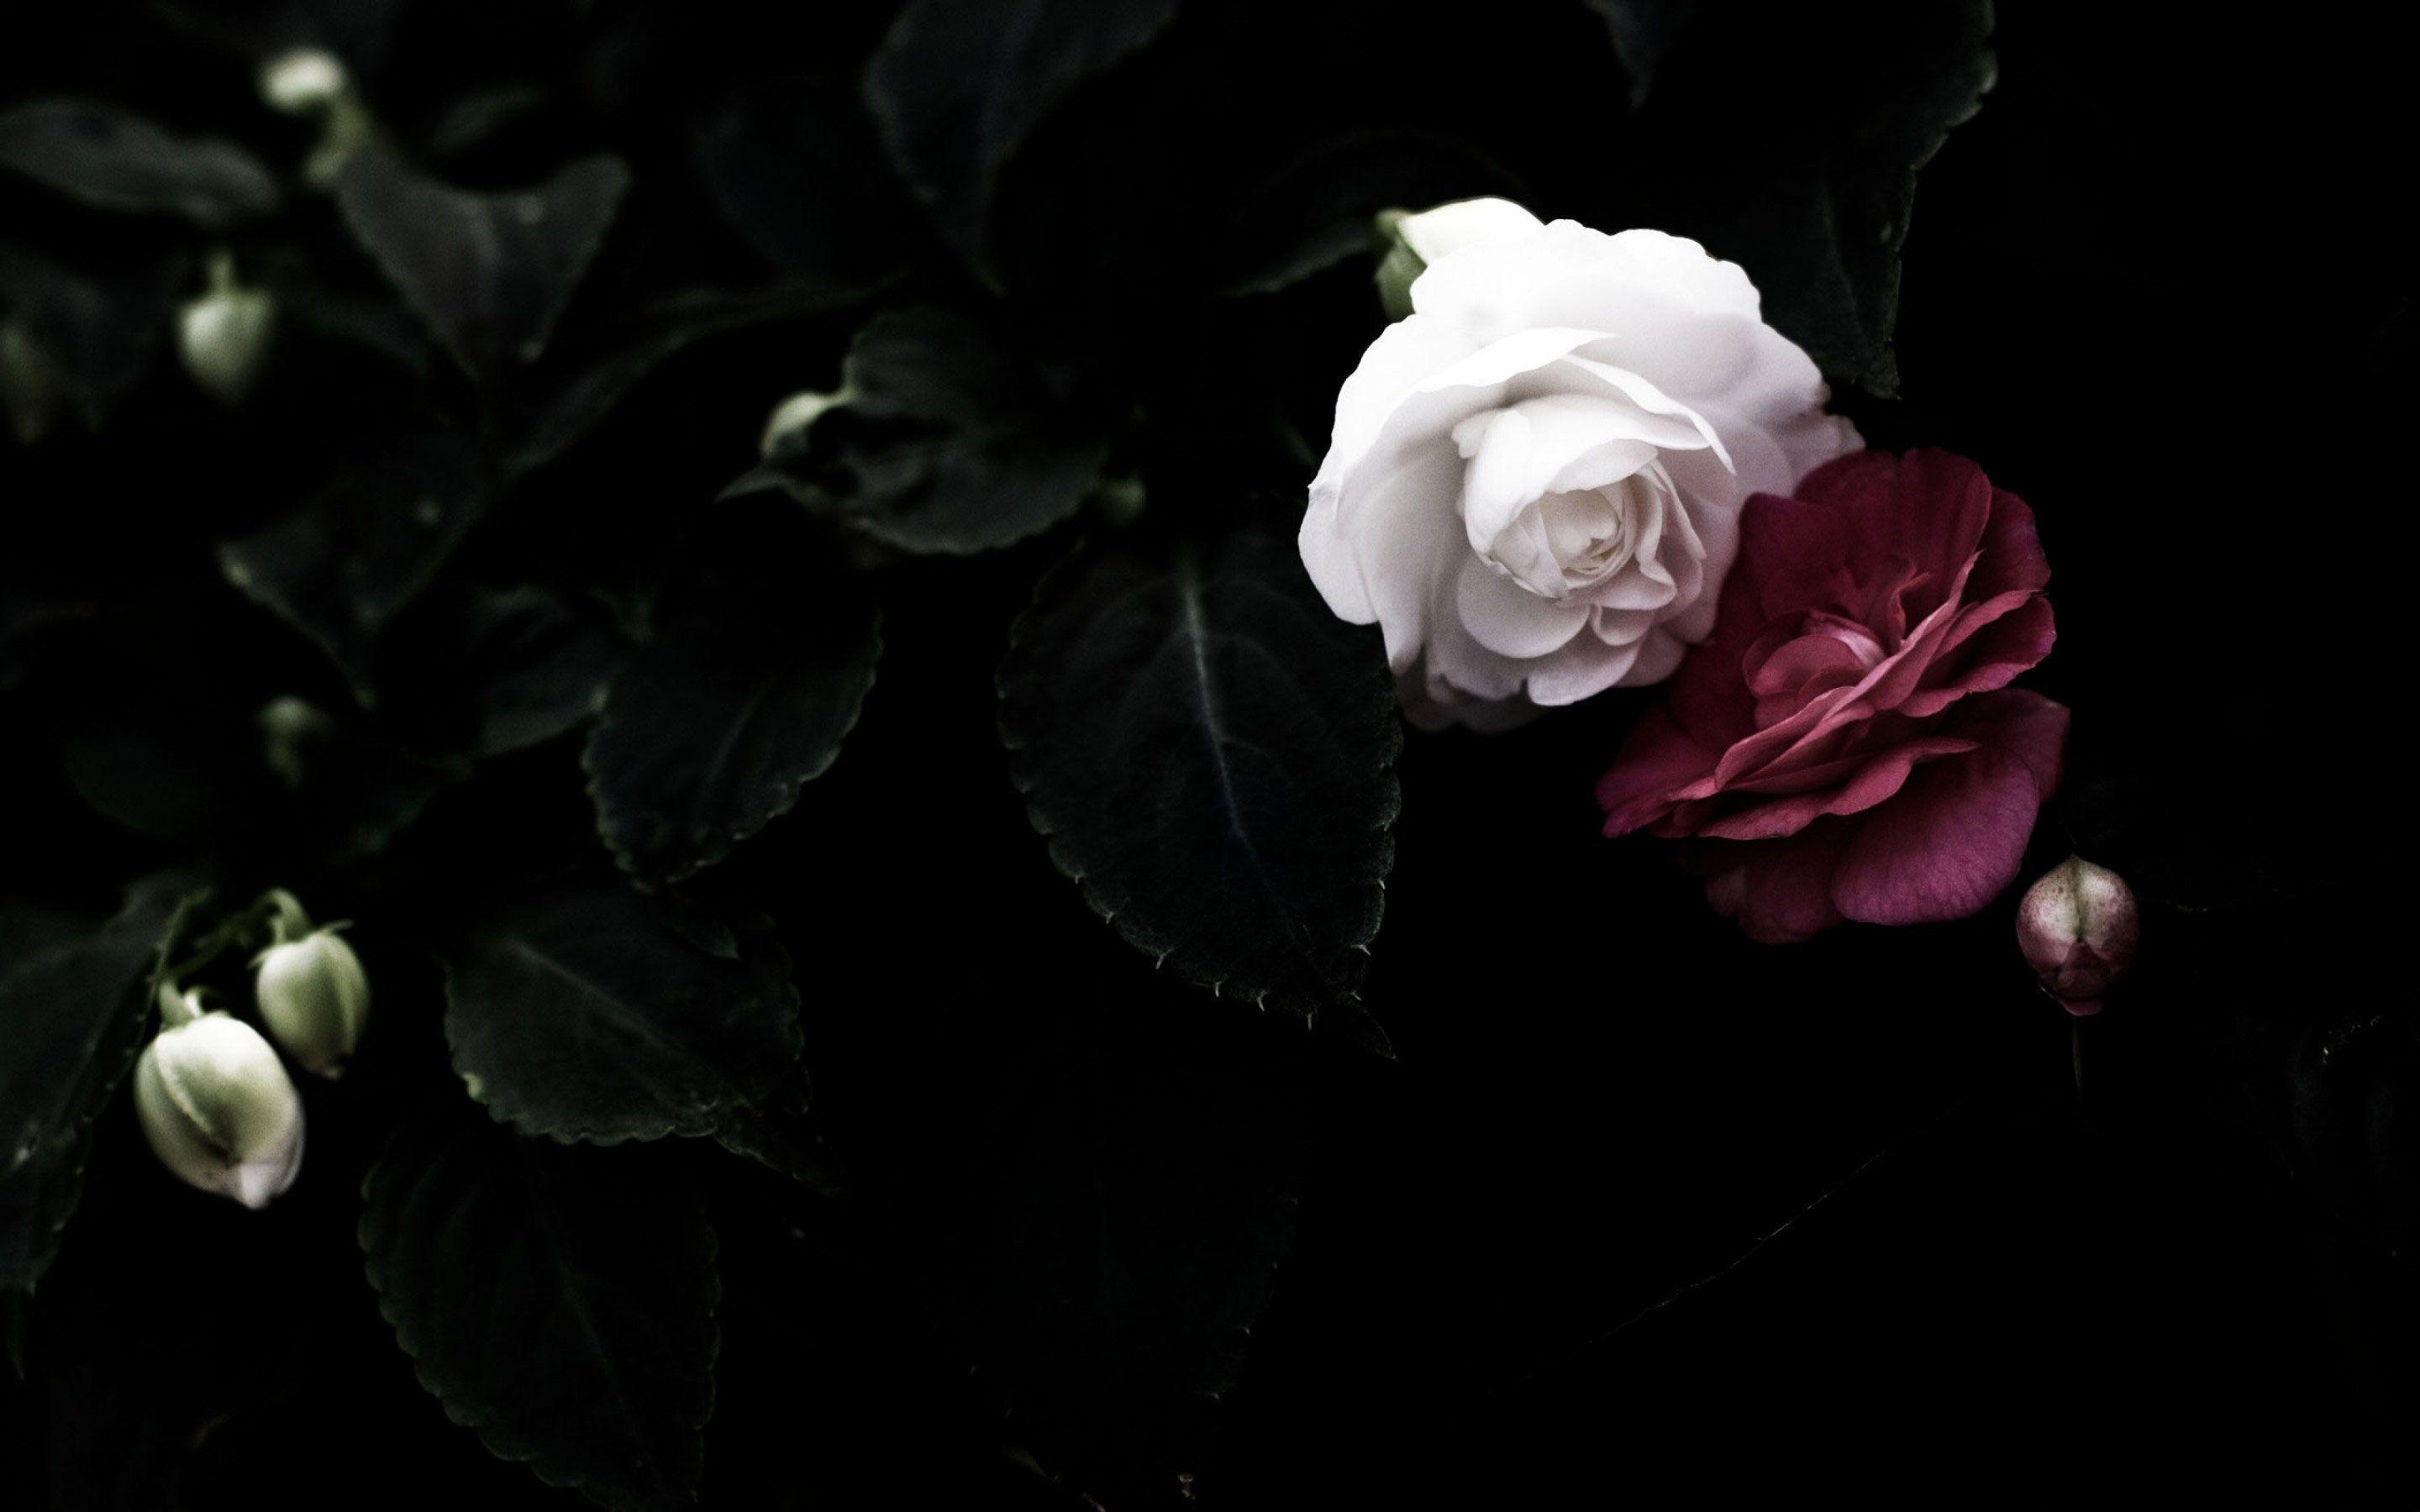 Black rose wallpapers wallpaper cave - Pink rose black background wallpaper ...